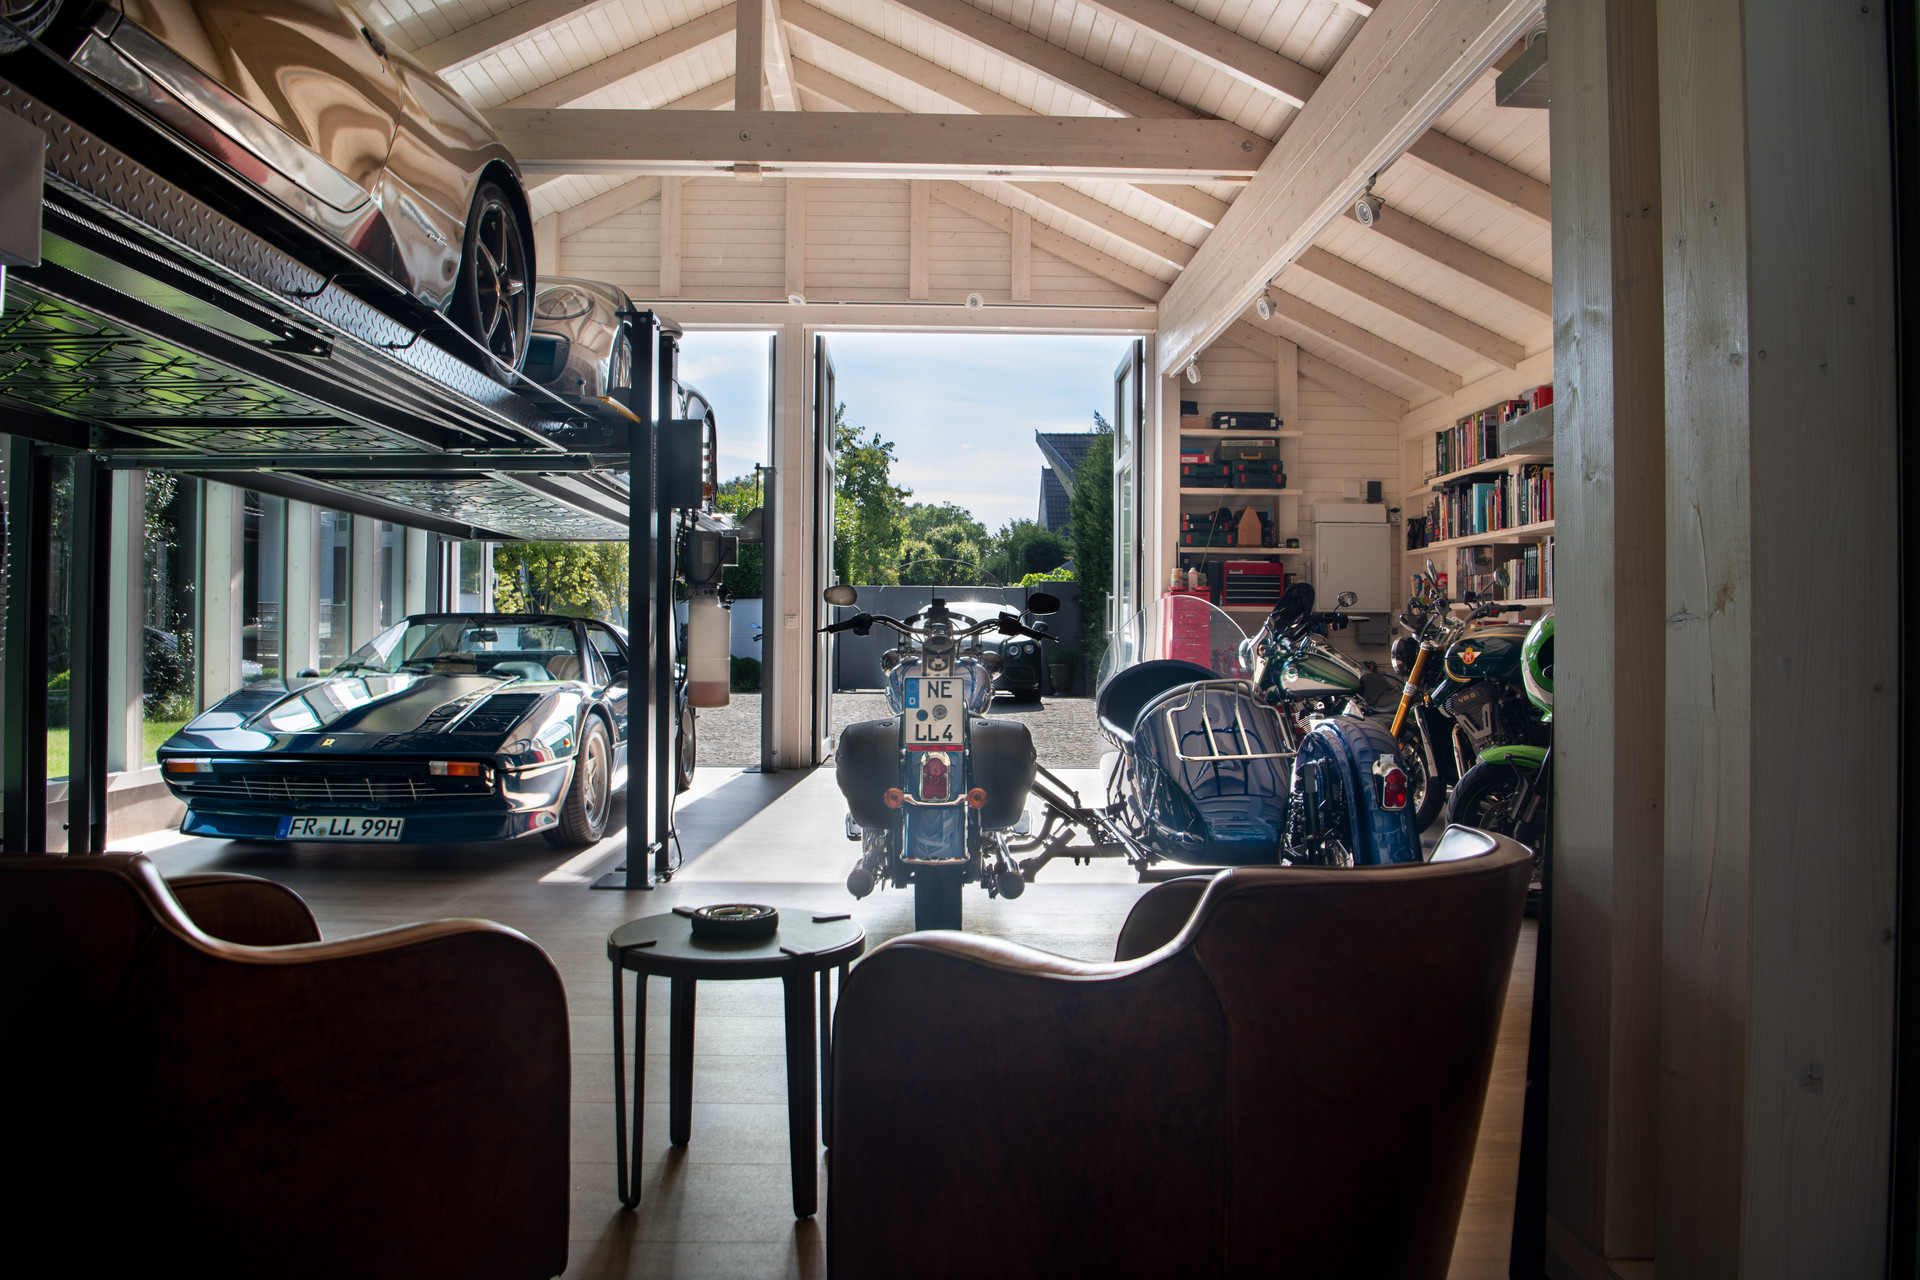 interior Garage 2.0 | Ben Dieckmann architects